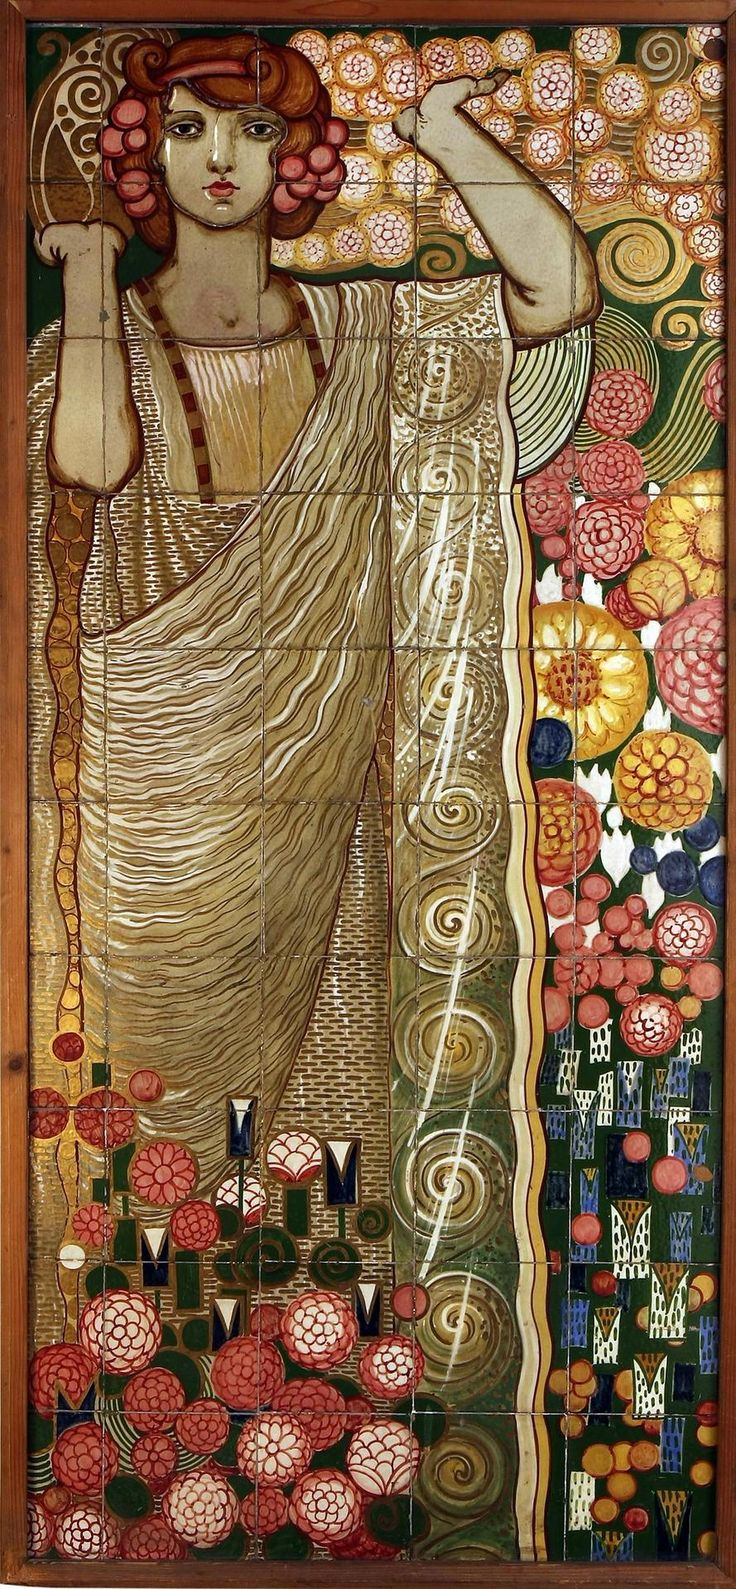 Galileo Chini, ceramic tile mural 1920. Not a true mosaic, but what an incredible tile artist!